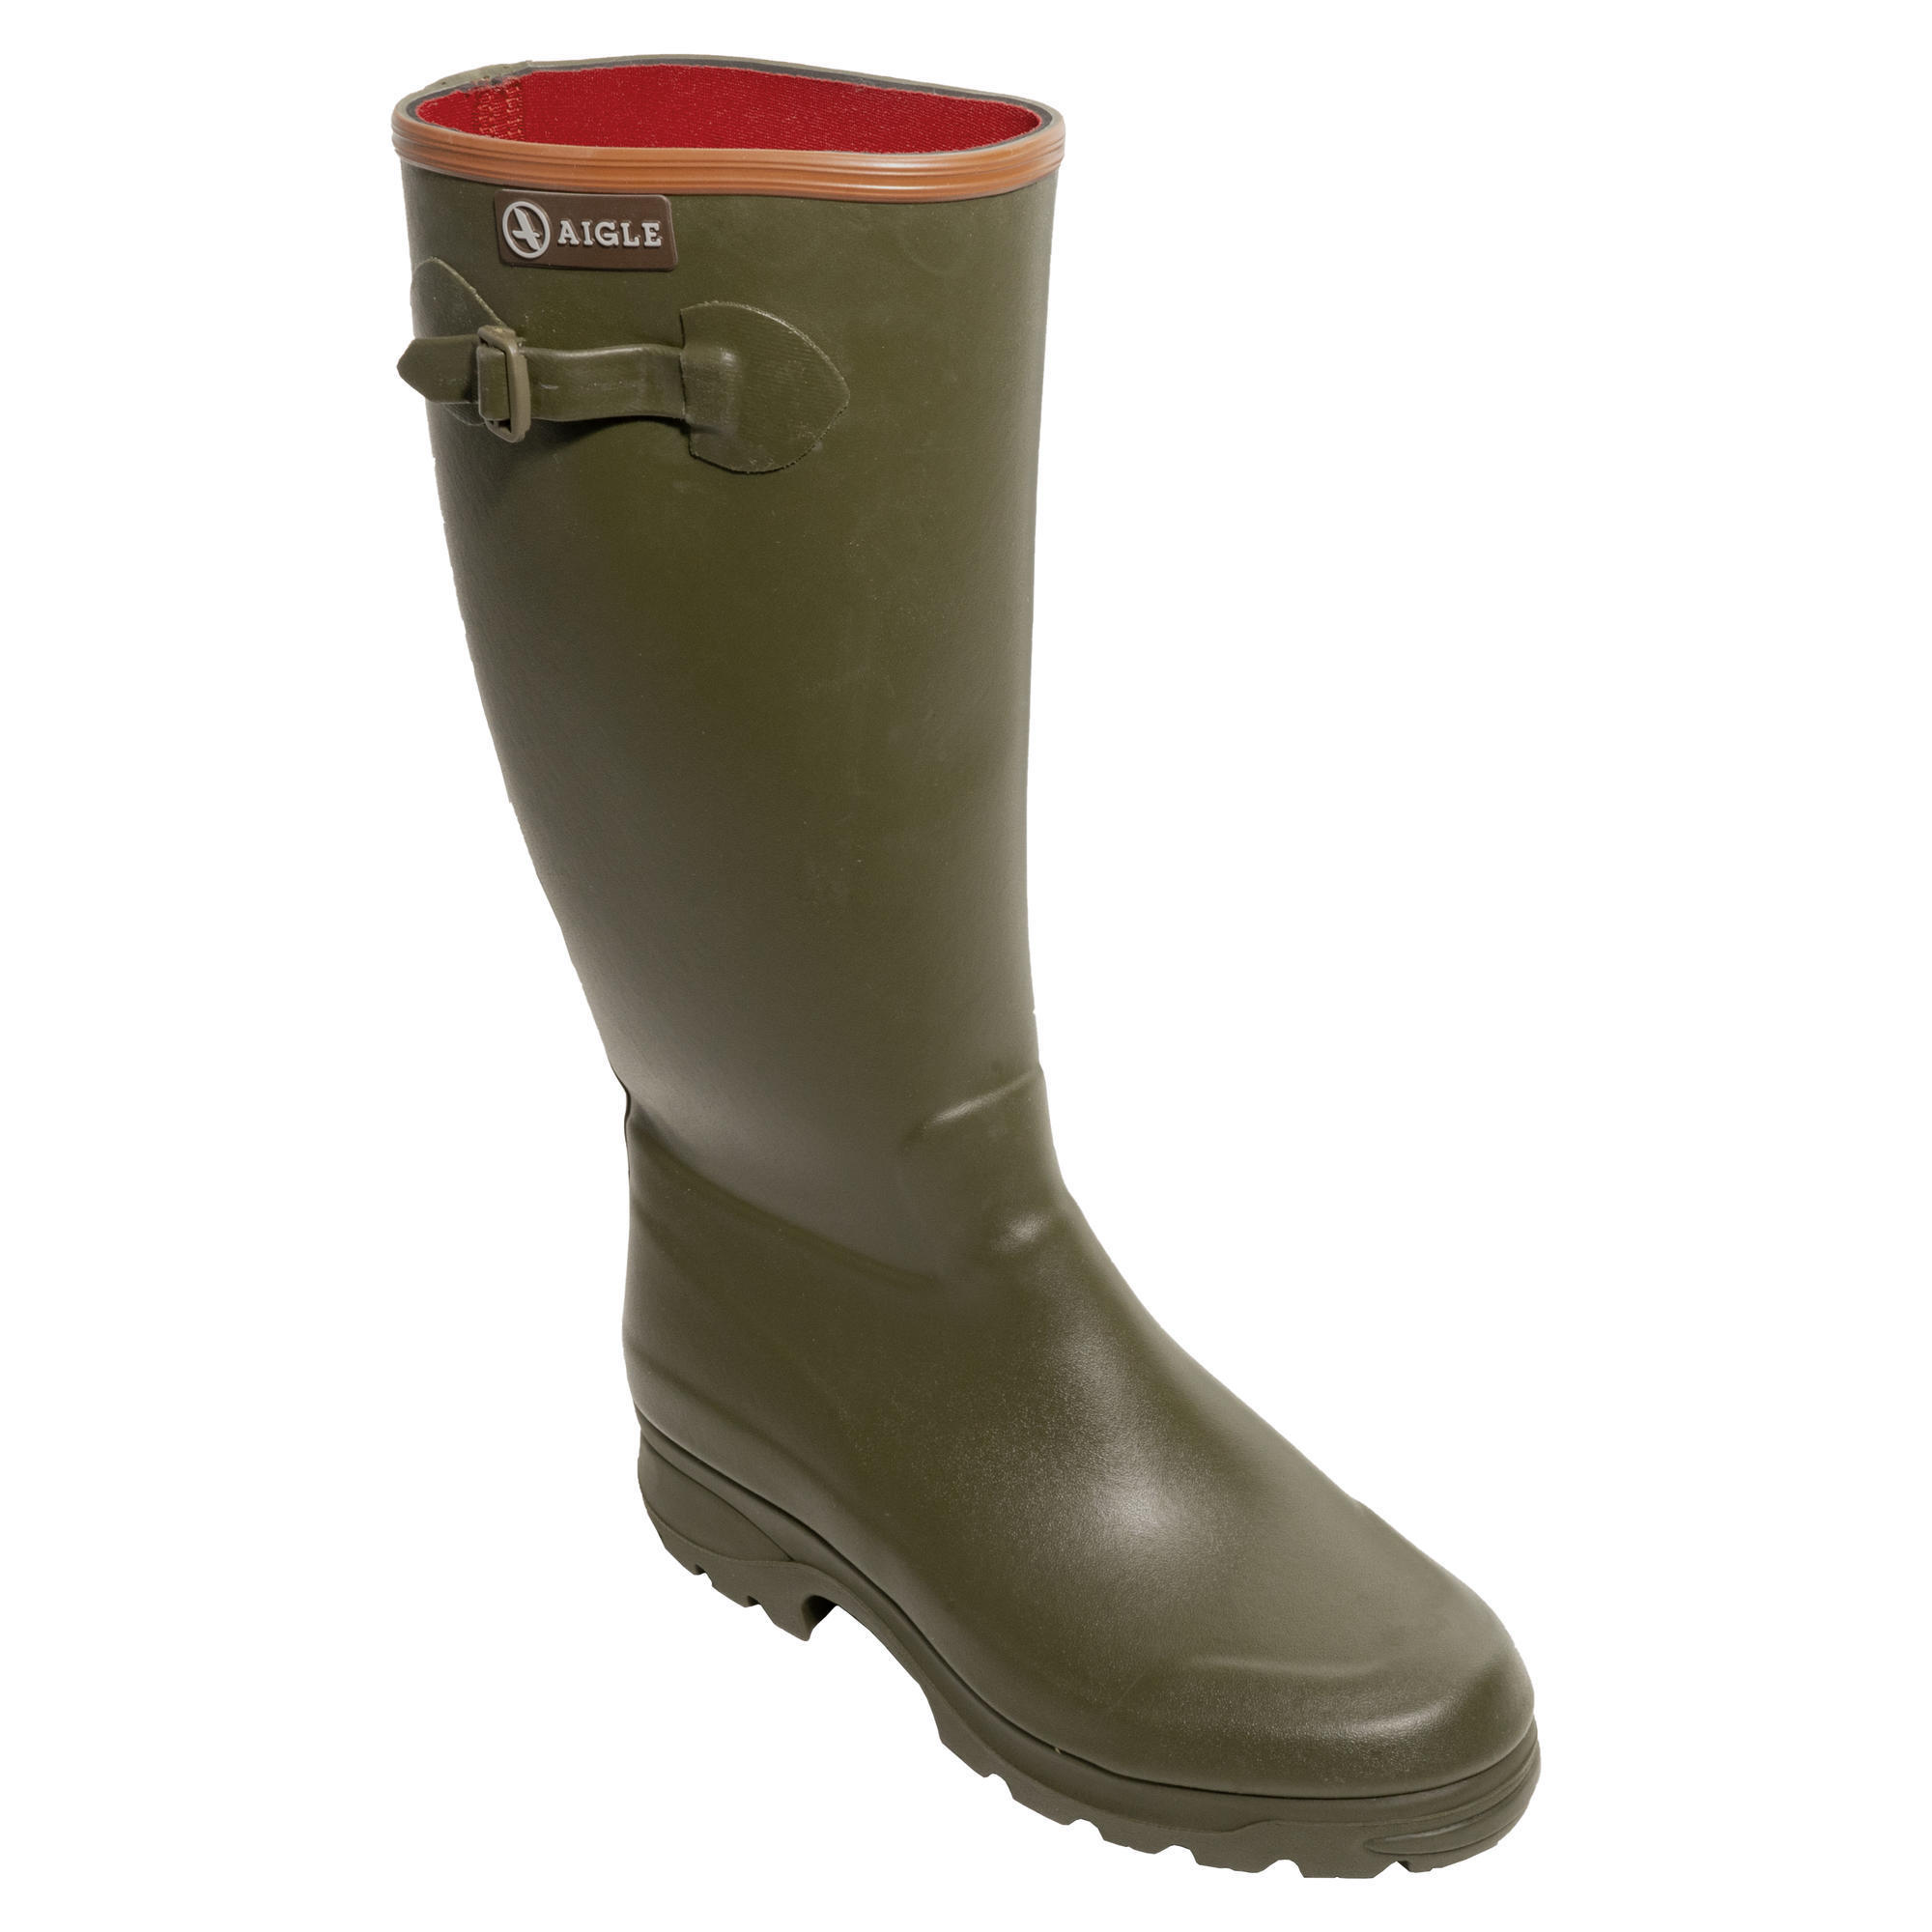 Bottes chasse arnay iso néoprène aigle